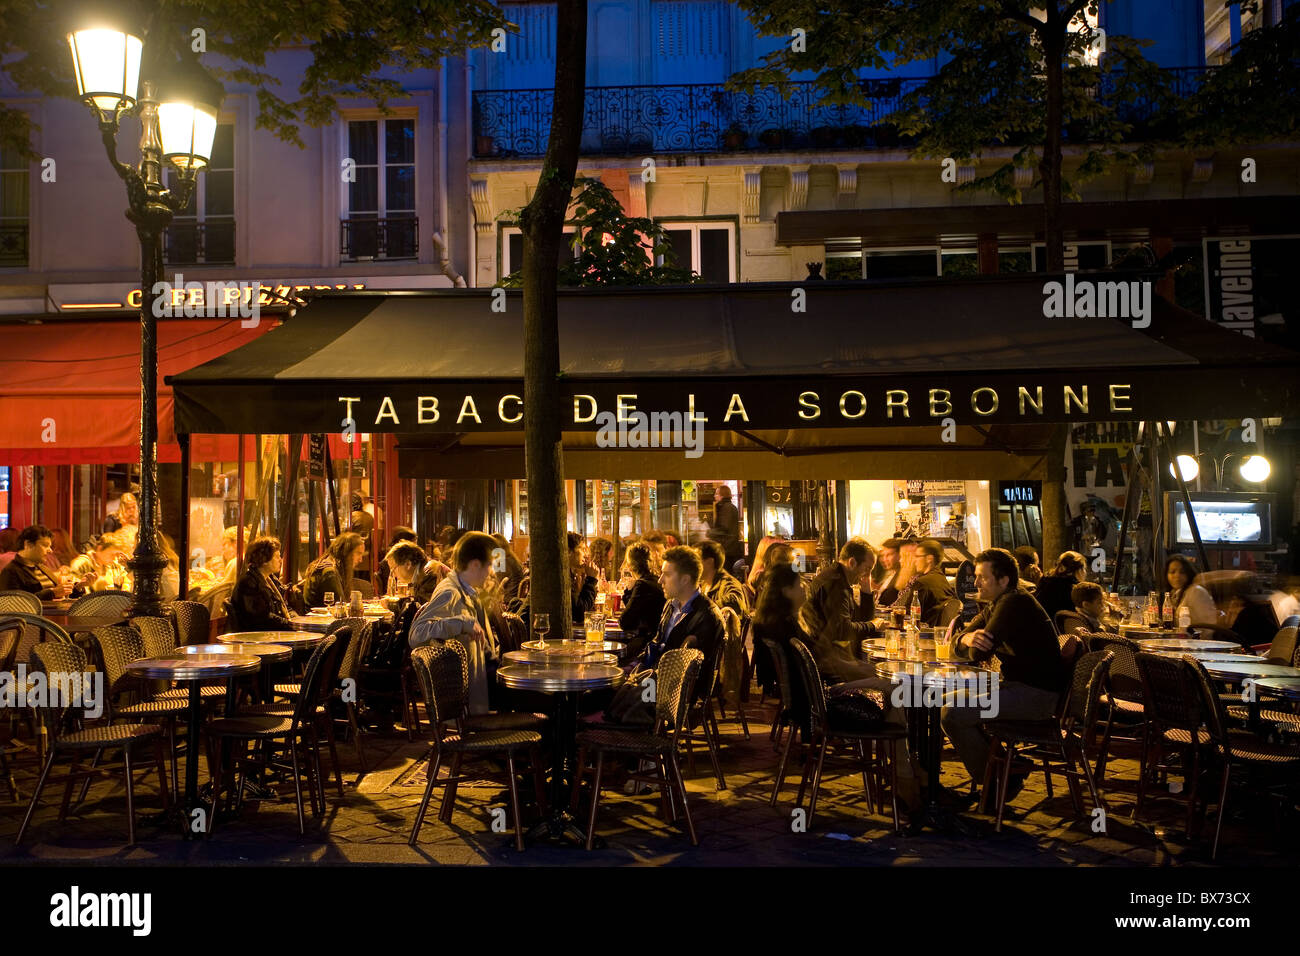 cafe with outdoor seating on place de la sorbonne - Stock Image